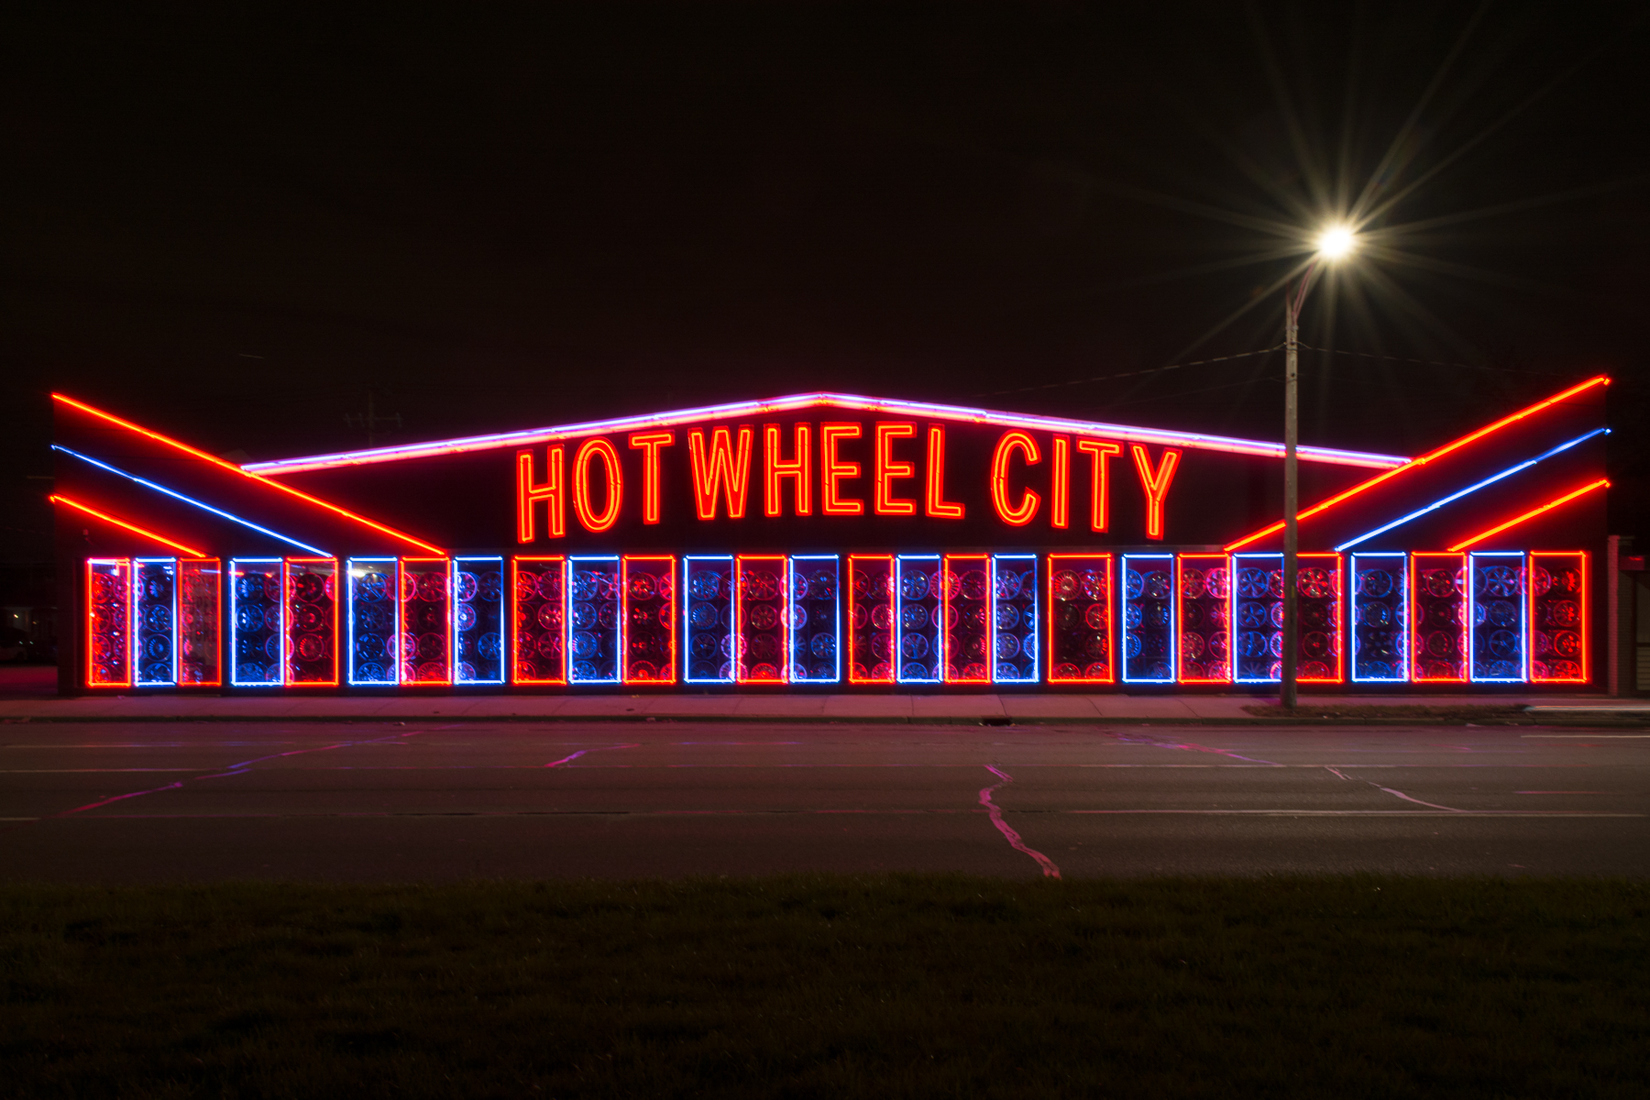 Neon Hot Wheel City No. 2a